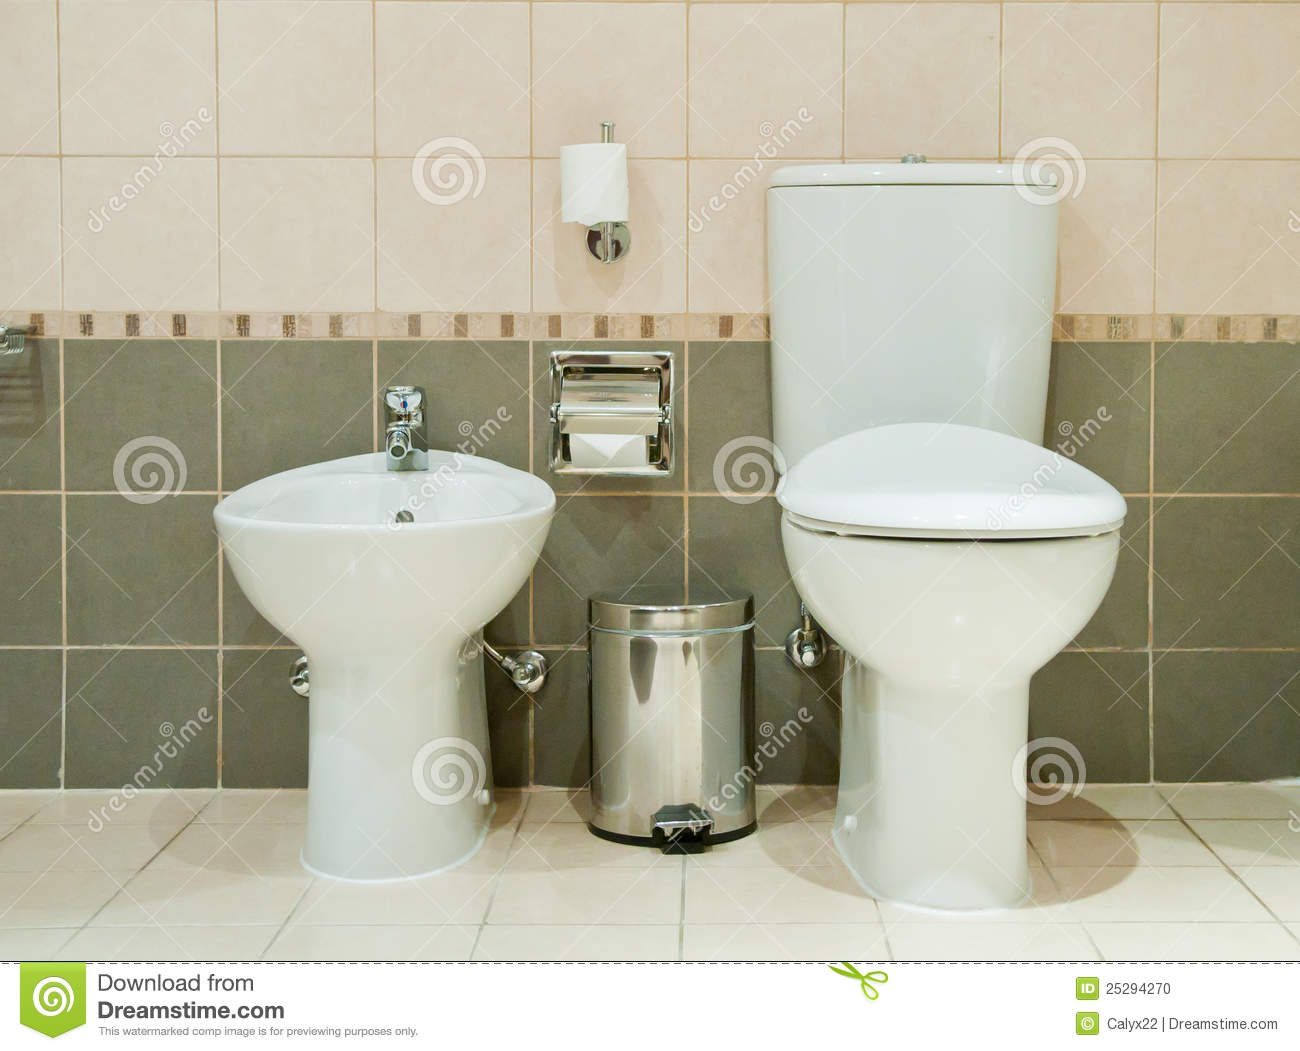 Bidet Toilette Modern Bathroom With Toilet And Bidet Stock Photo Image Of